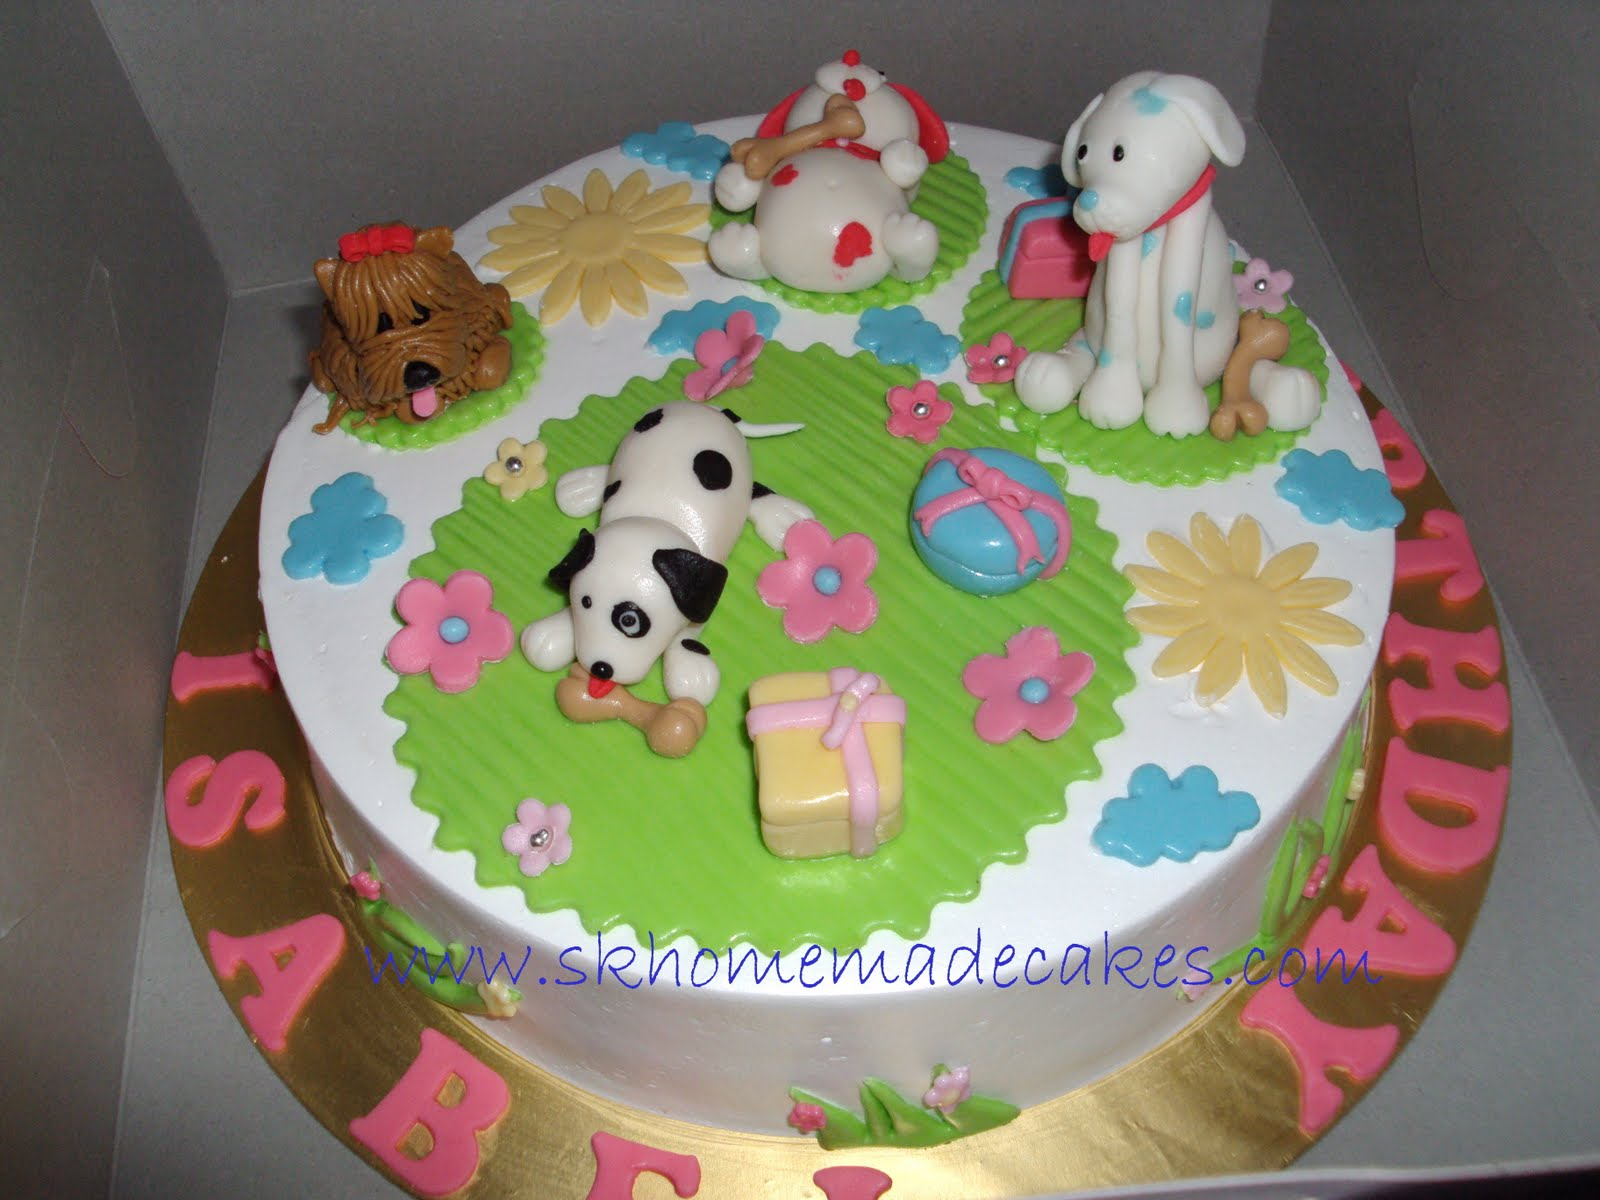 Pictures of Dog Cakes http://www.skhomemadecakes.com/2010_03_01_archive.html